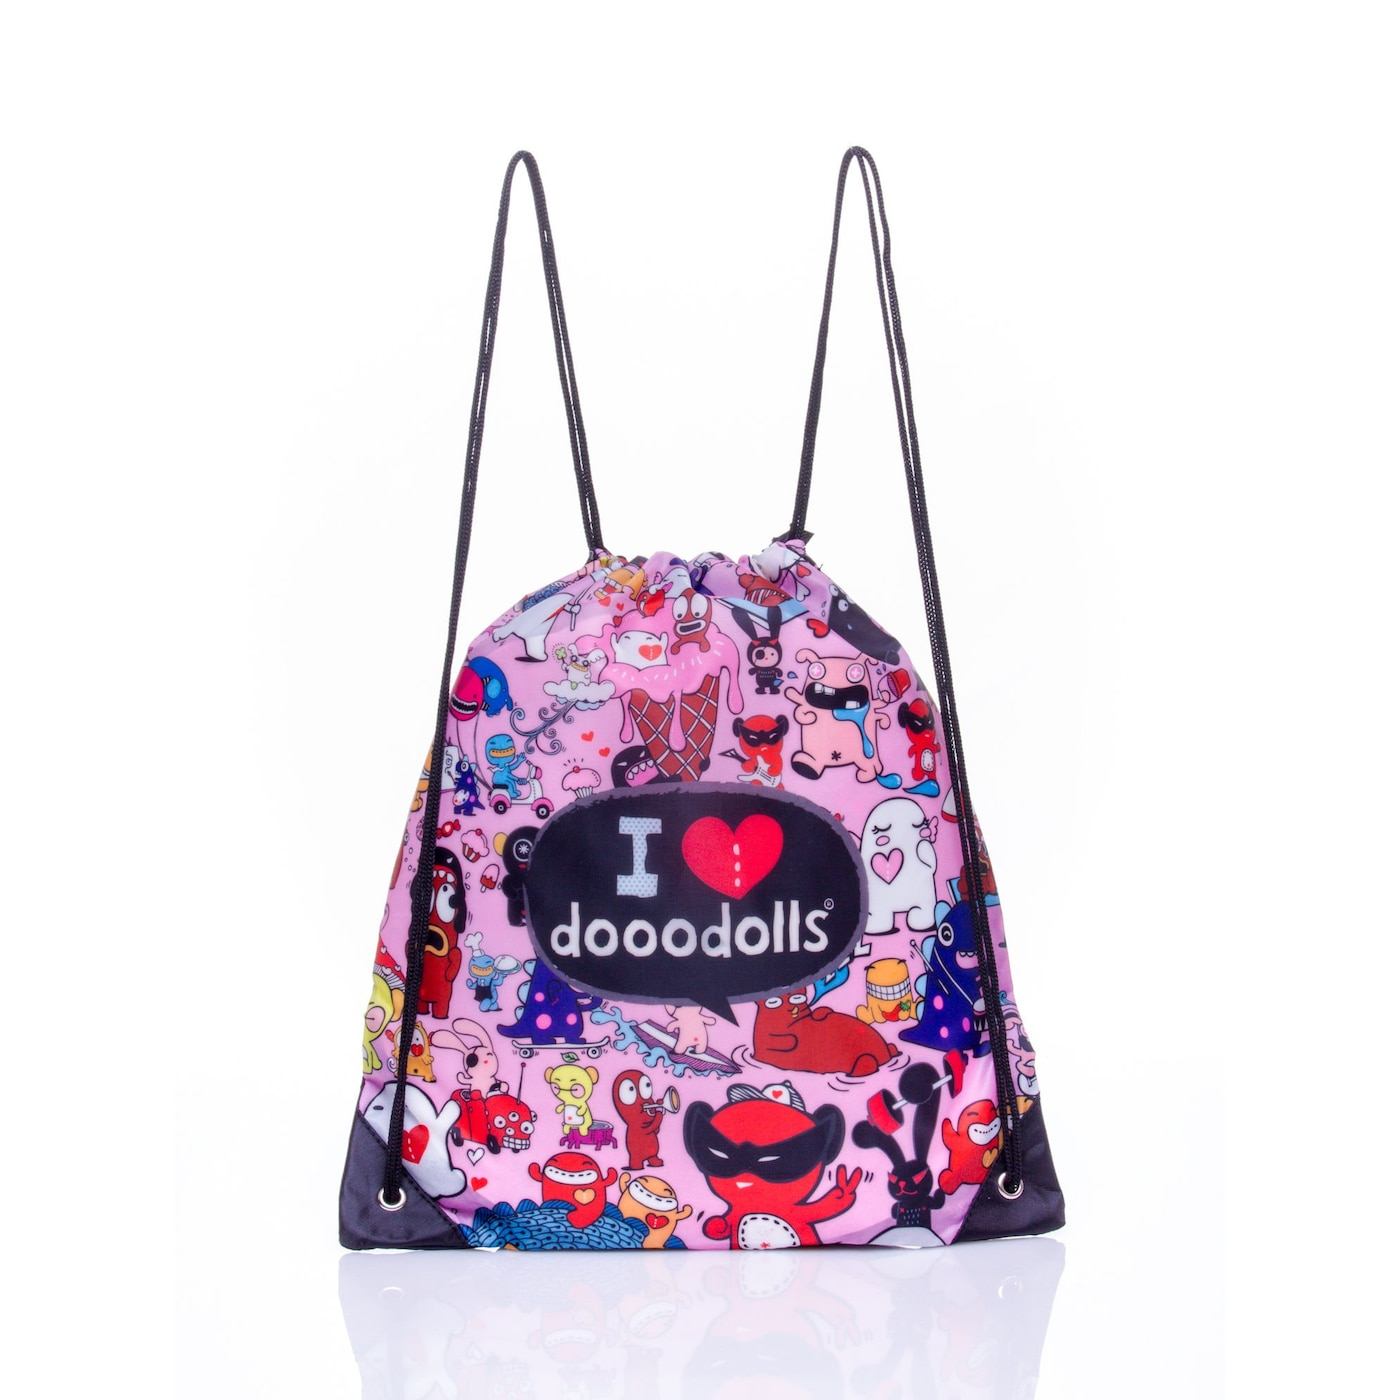 Pink backpack with a Dooodolls motif